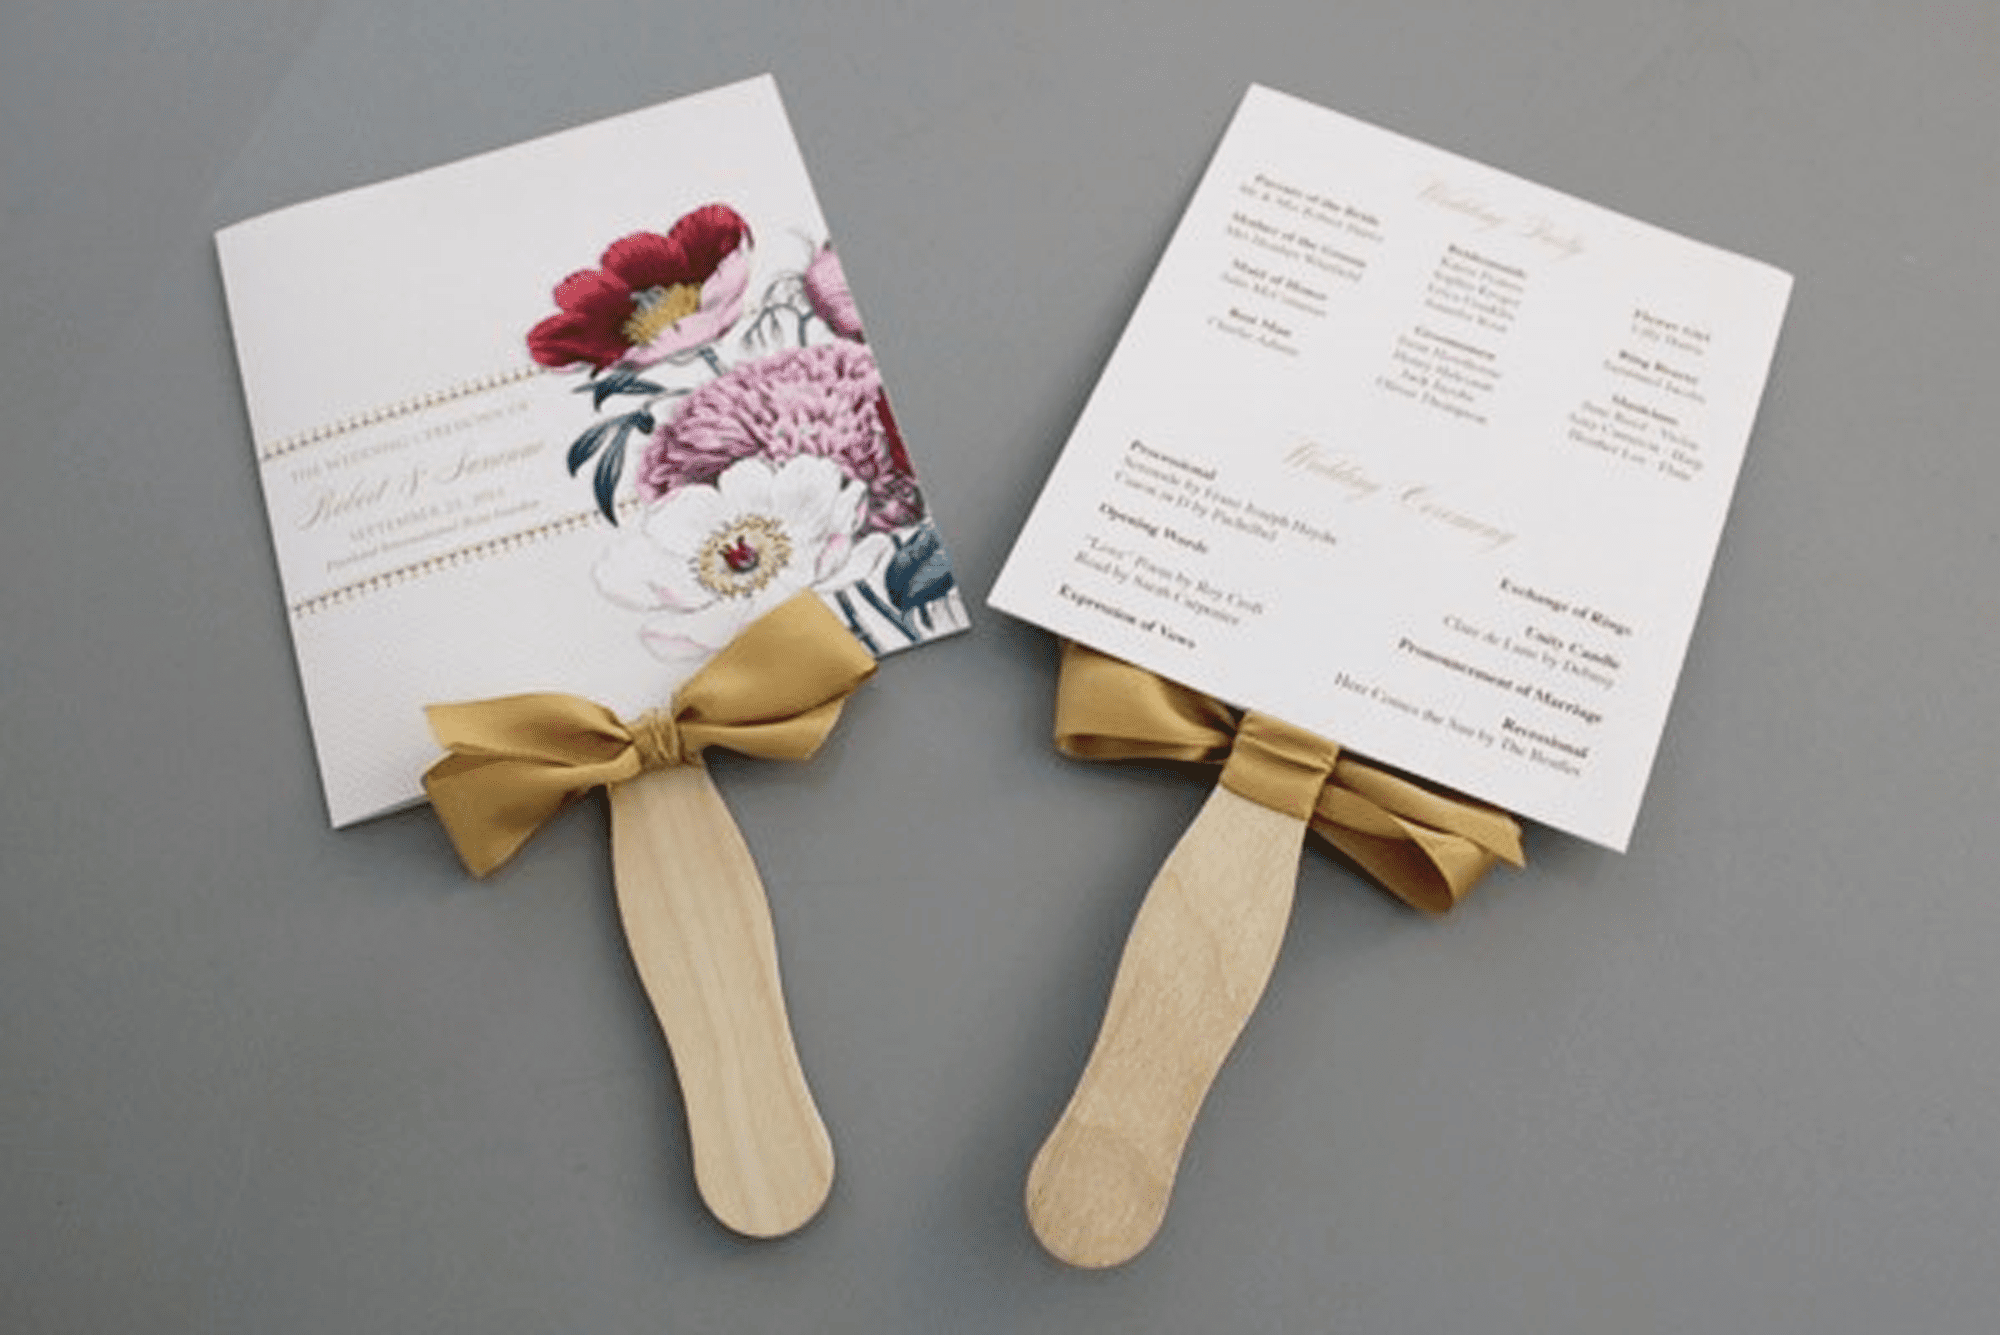 Free Wedding Program Templates You Can Customize - Free Printable Fan Wedding Programs